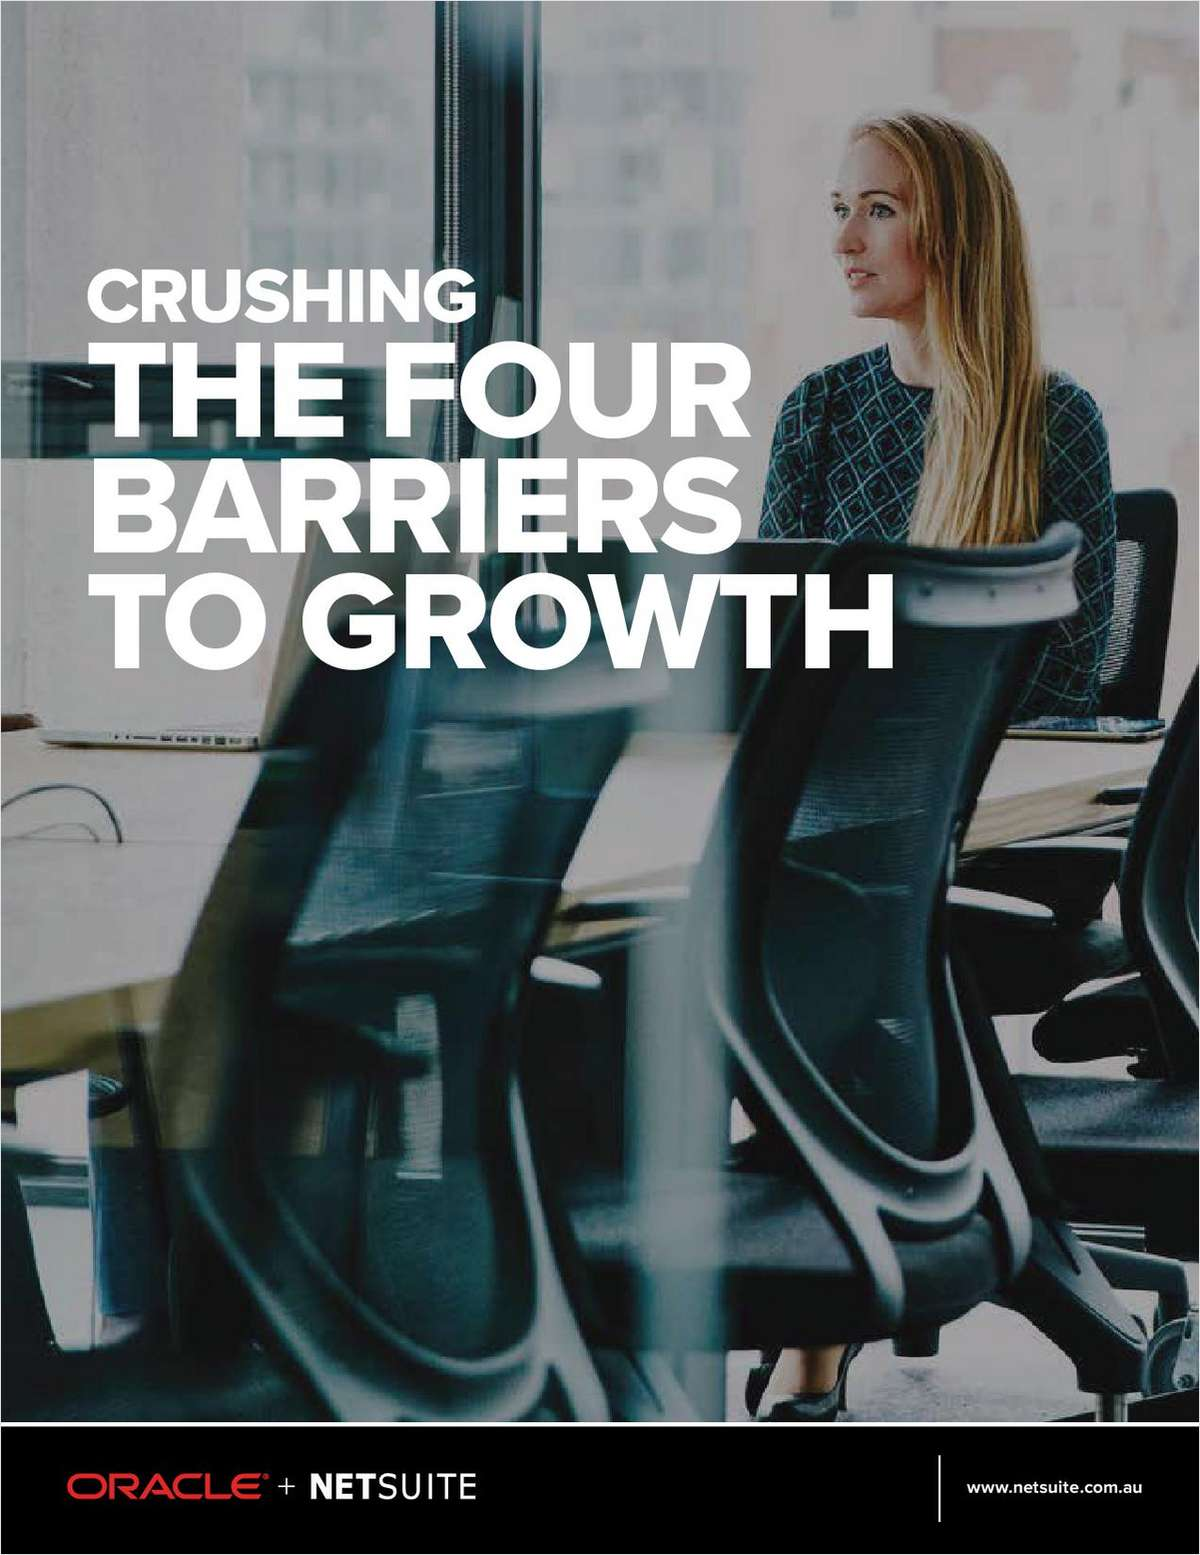 Crushing the Four Barriers to Growth